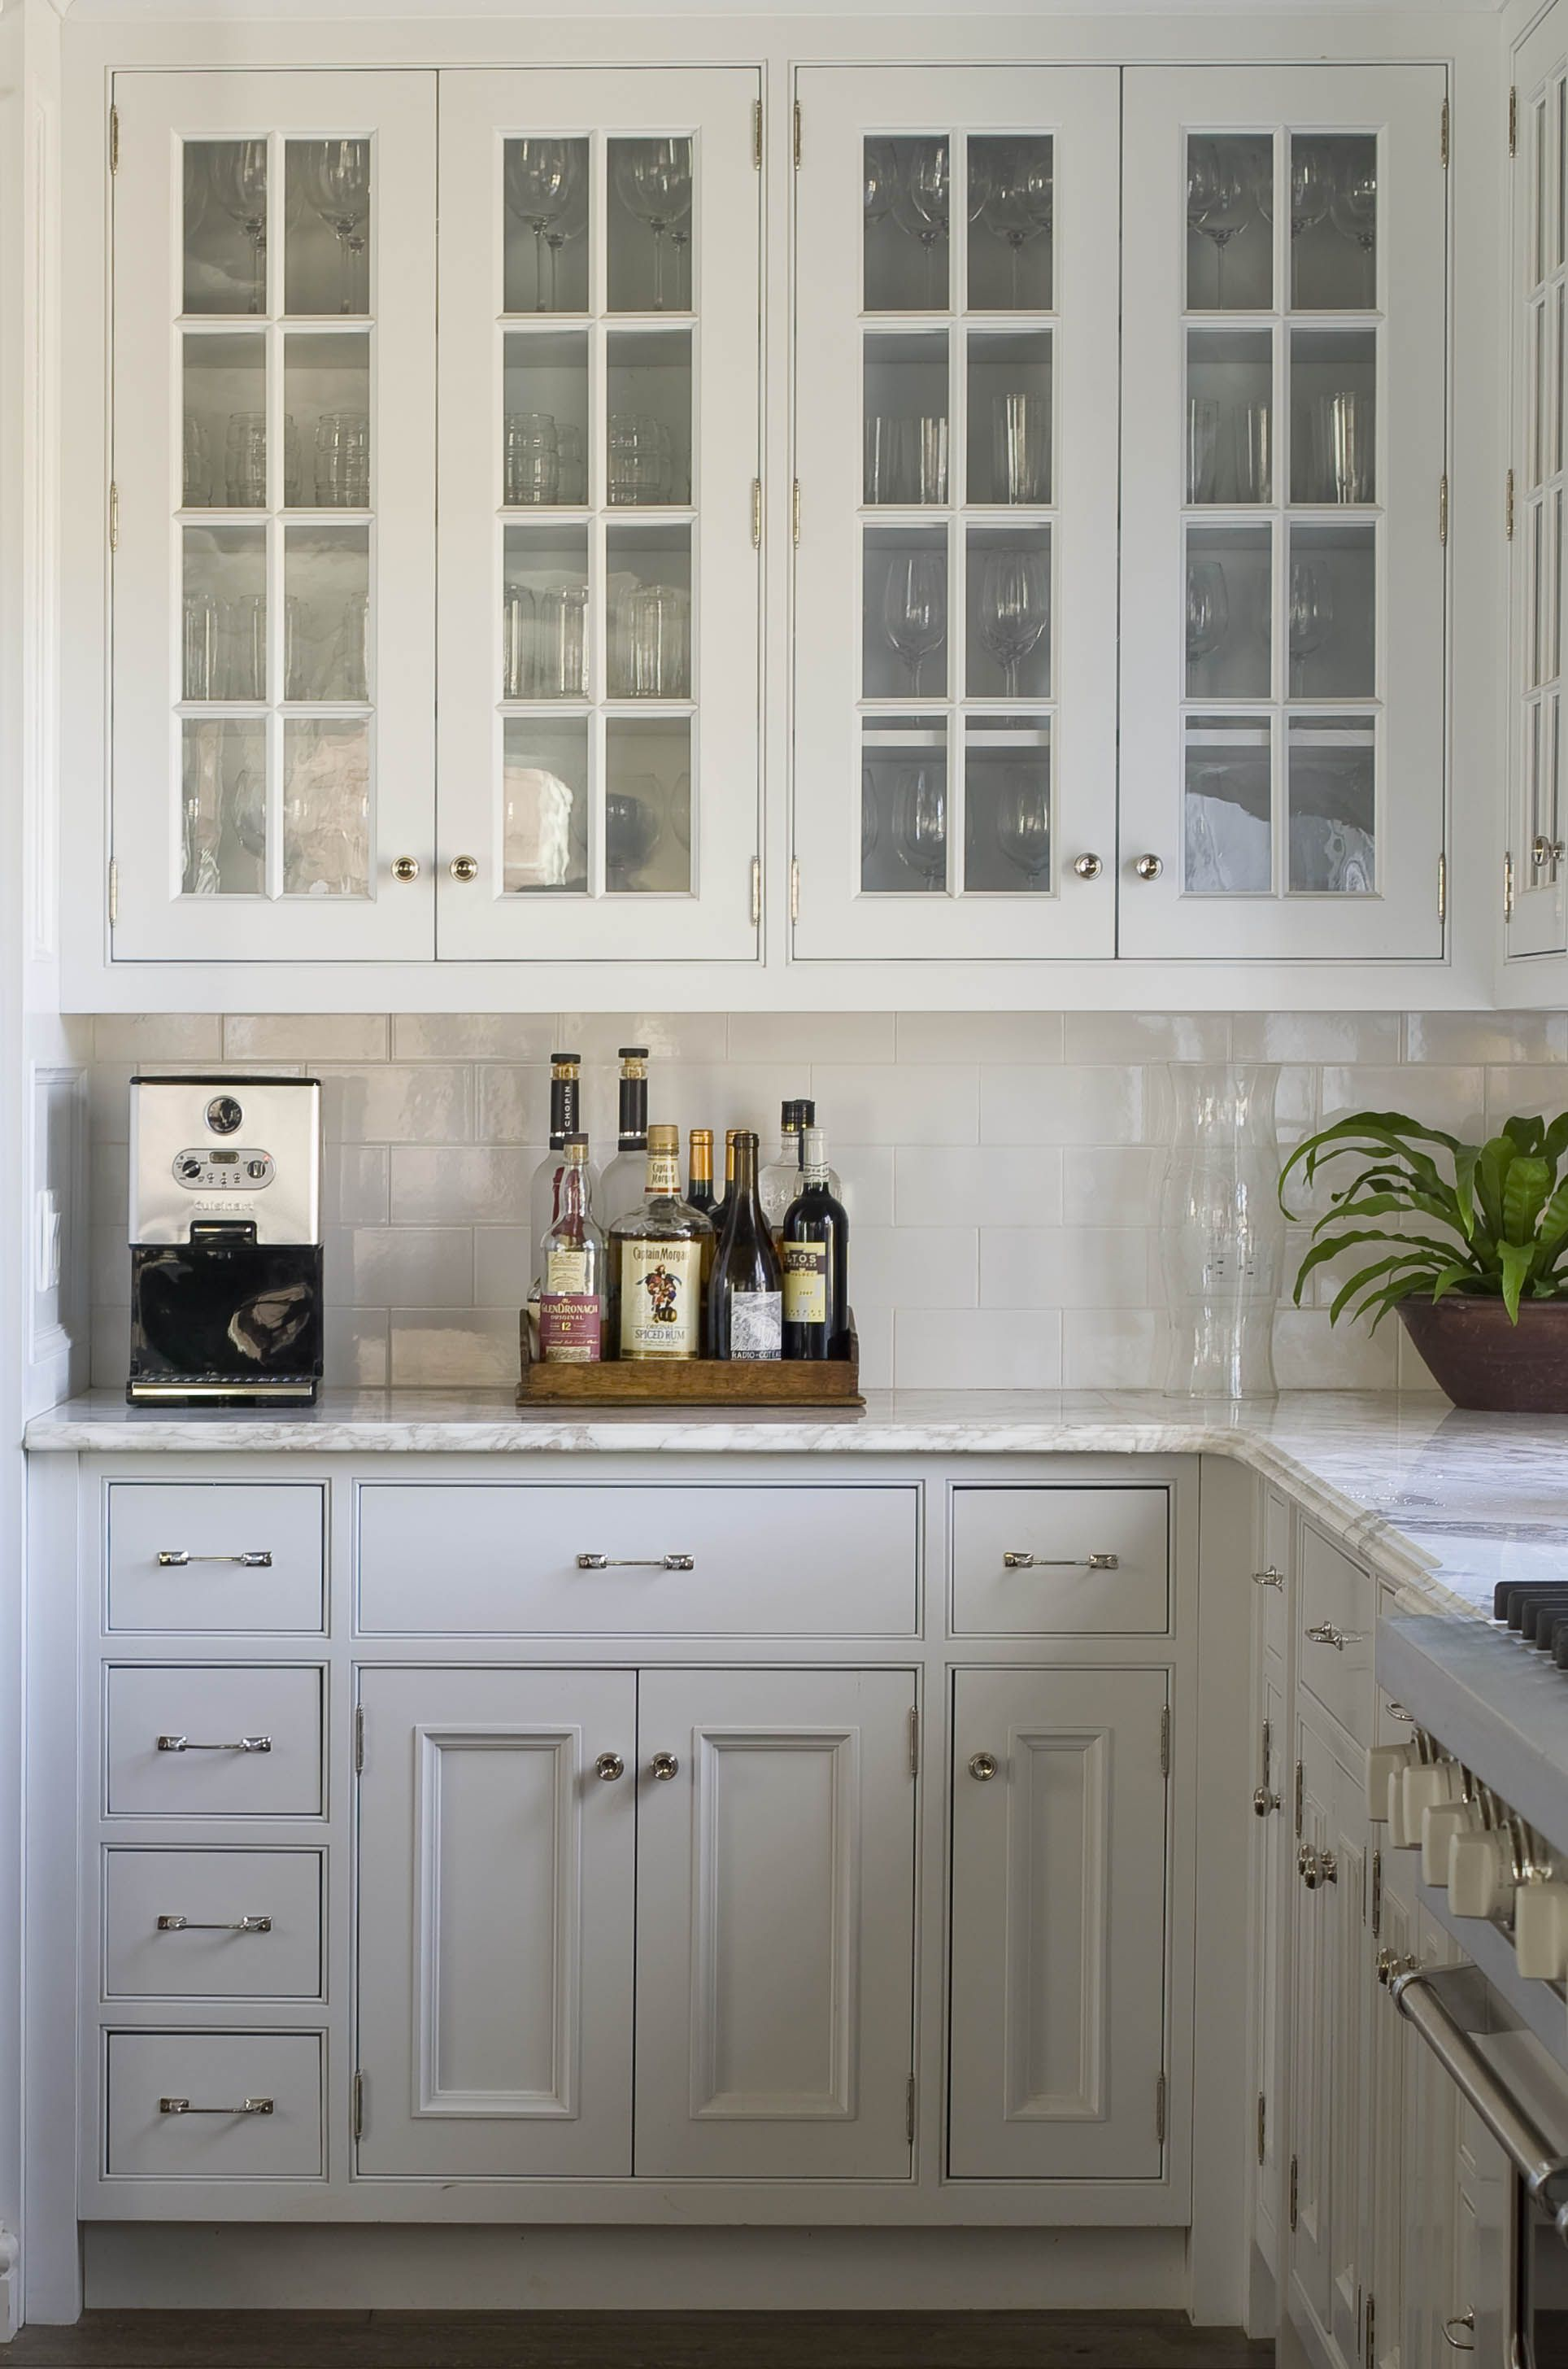 cosy kitchen hutch cabinets marvelous inspiration. East-Facing Kitchens For Morning Sun. Glass CabinetsKitchen Cosy Kitchen Hutch Cabinets Marvelous Inspiration E